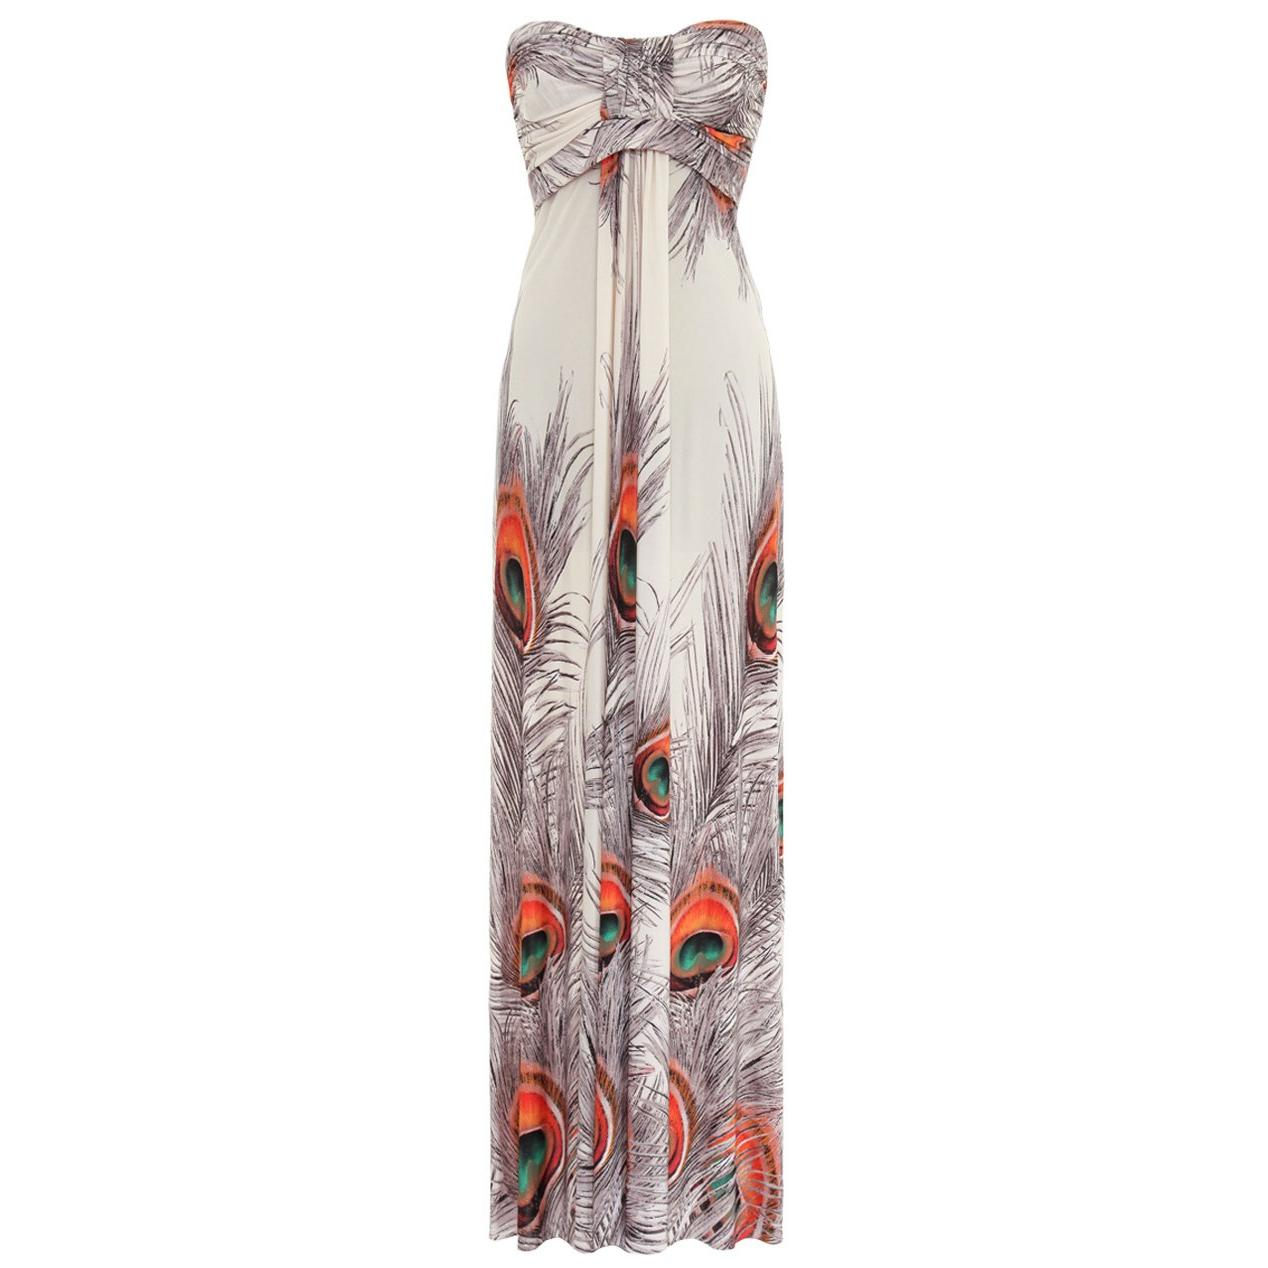 THIS BEAUTIFUL MAXI DRESS